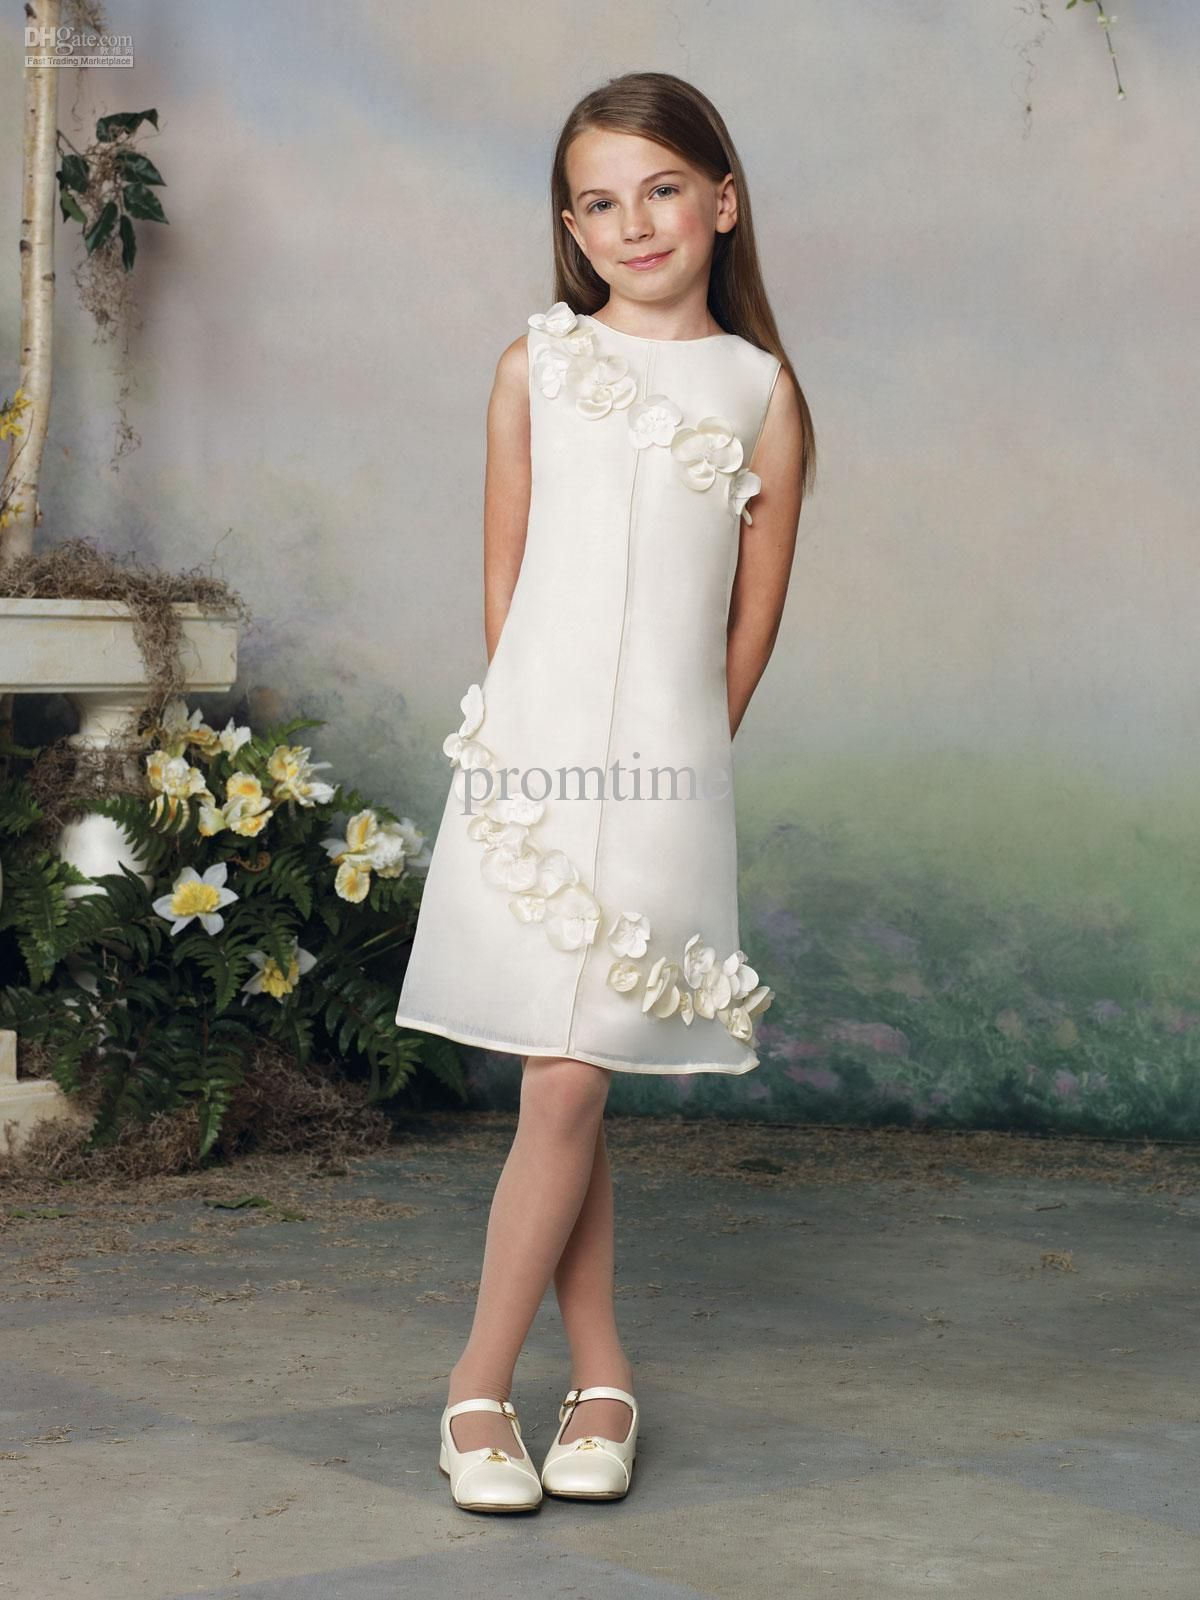 Bestselling simple hand made flowers designer girls formal occasion